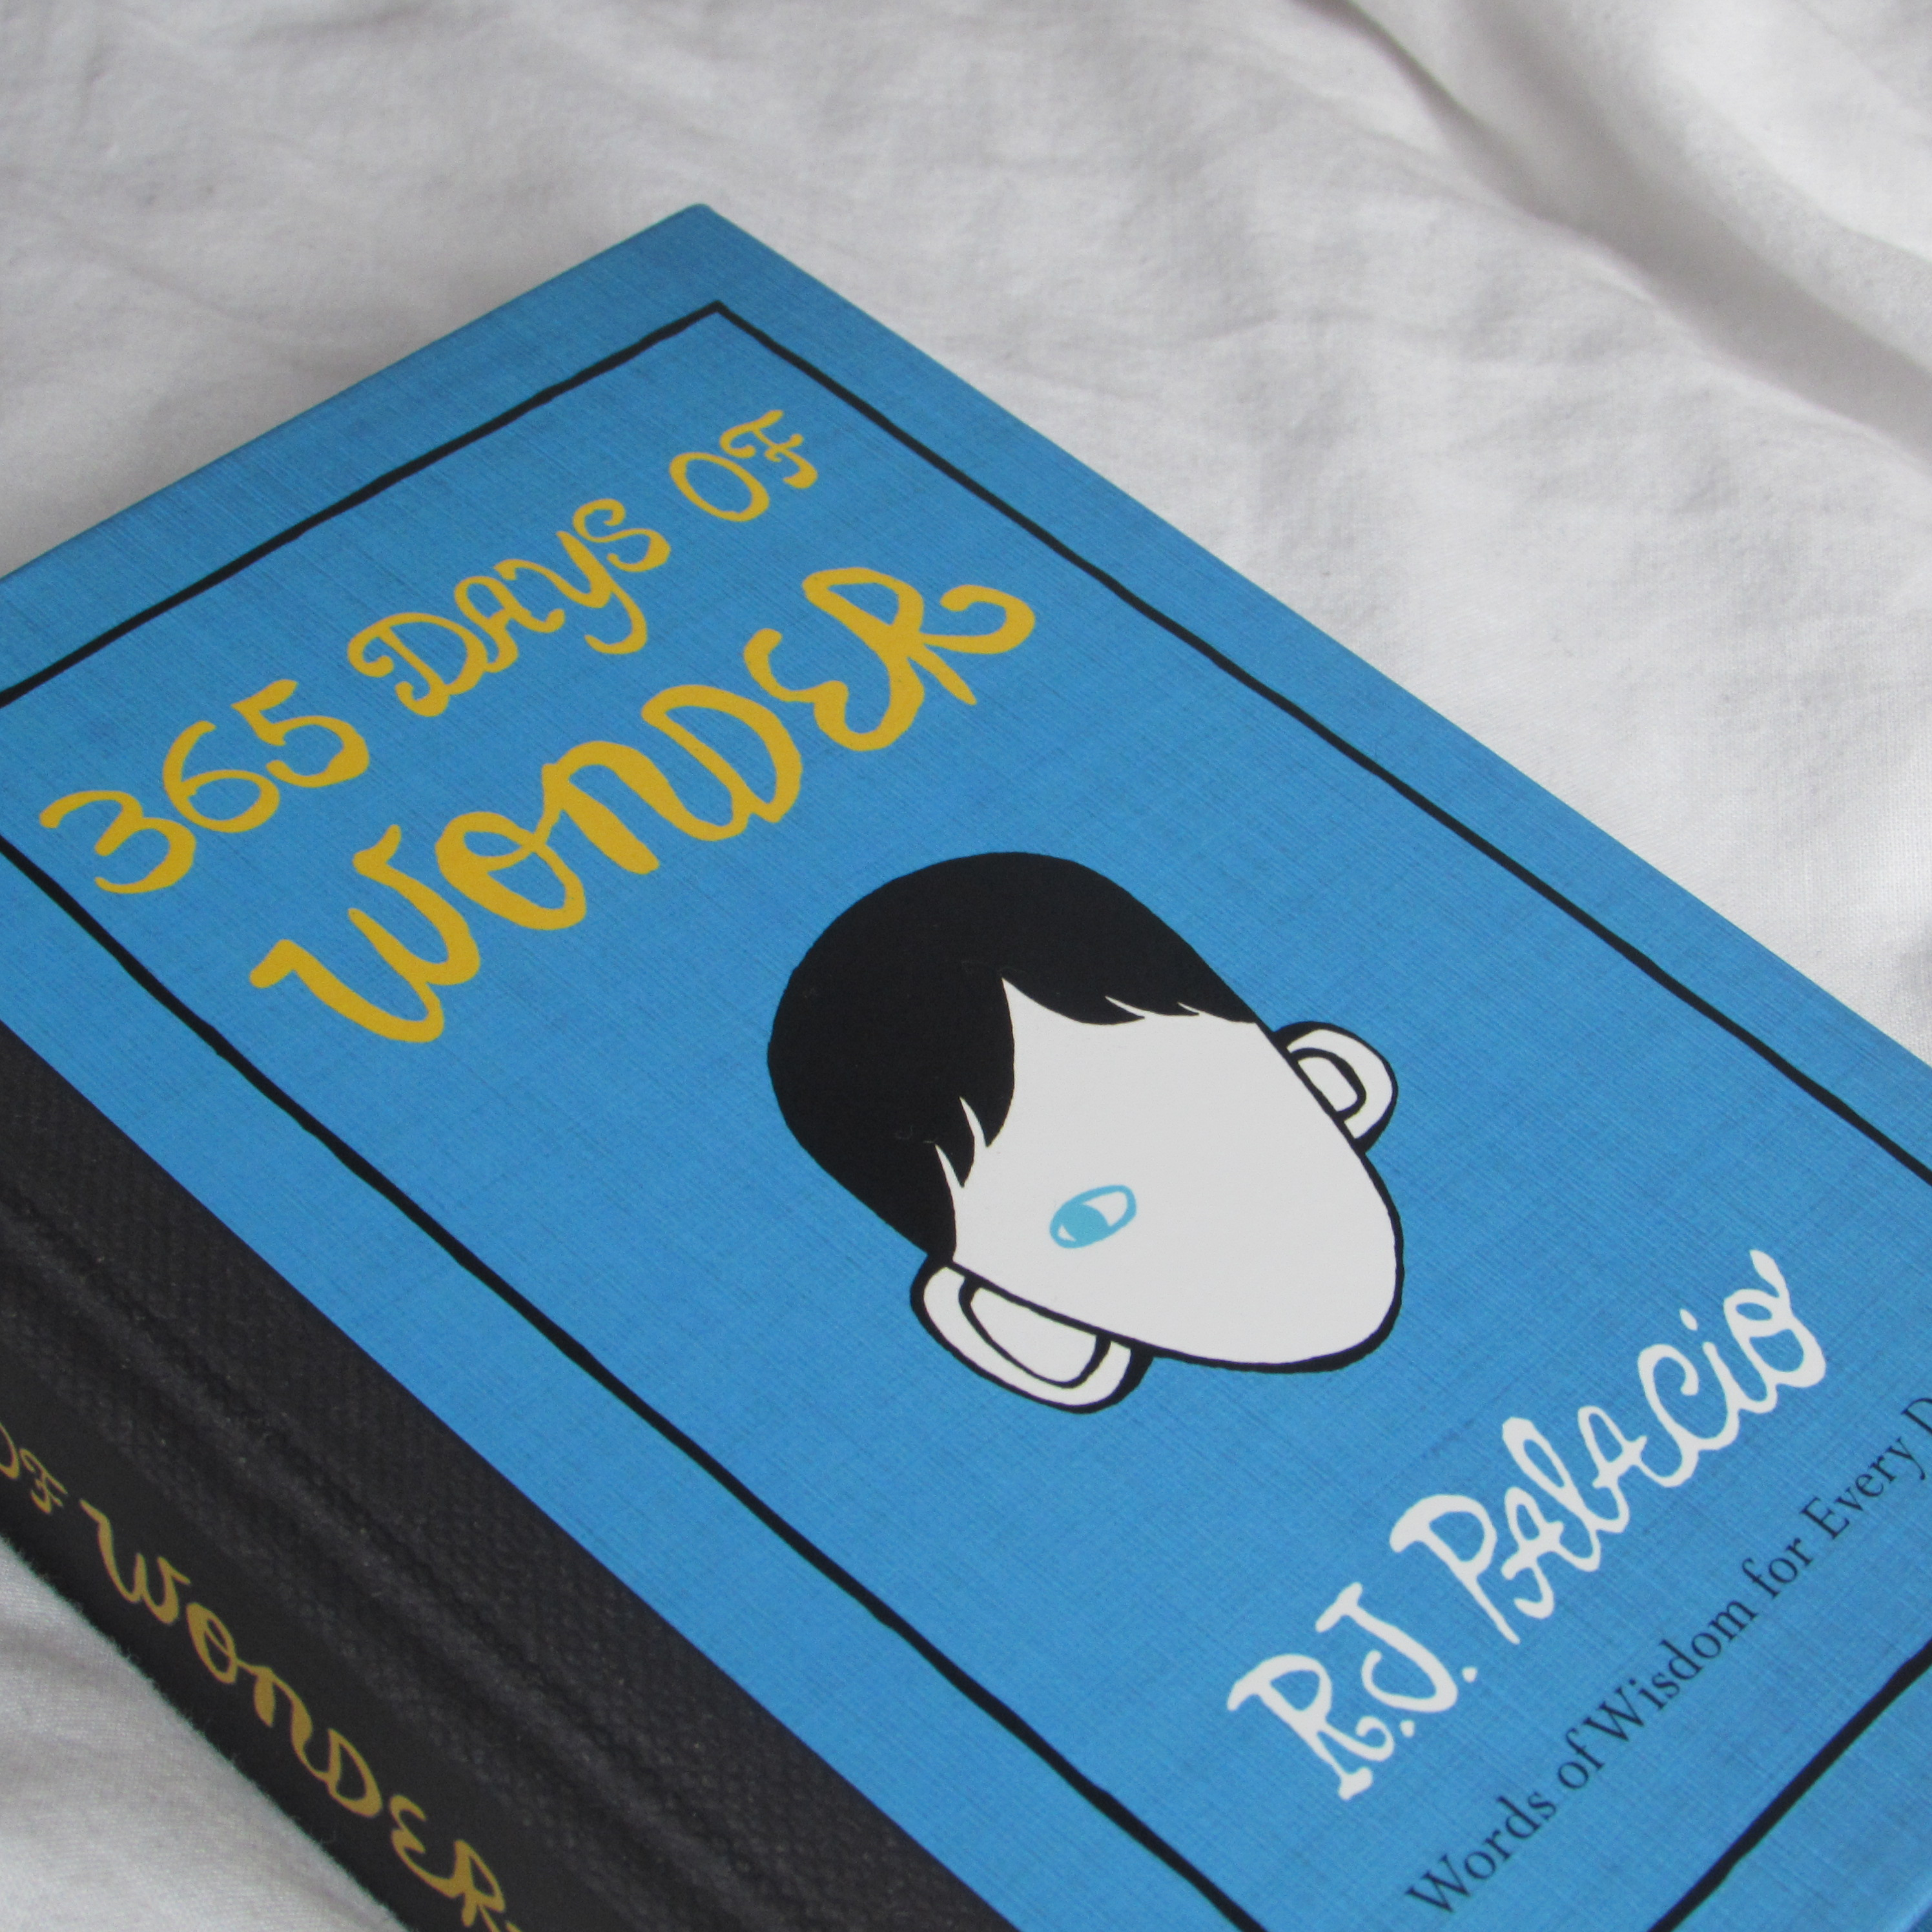 Wonder | the bibliomaniac book blog